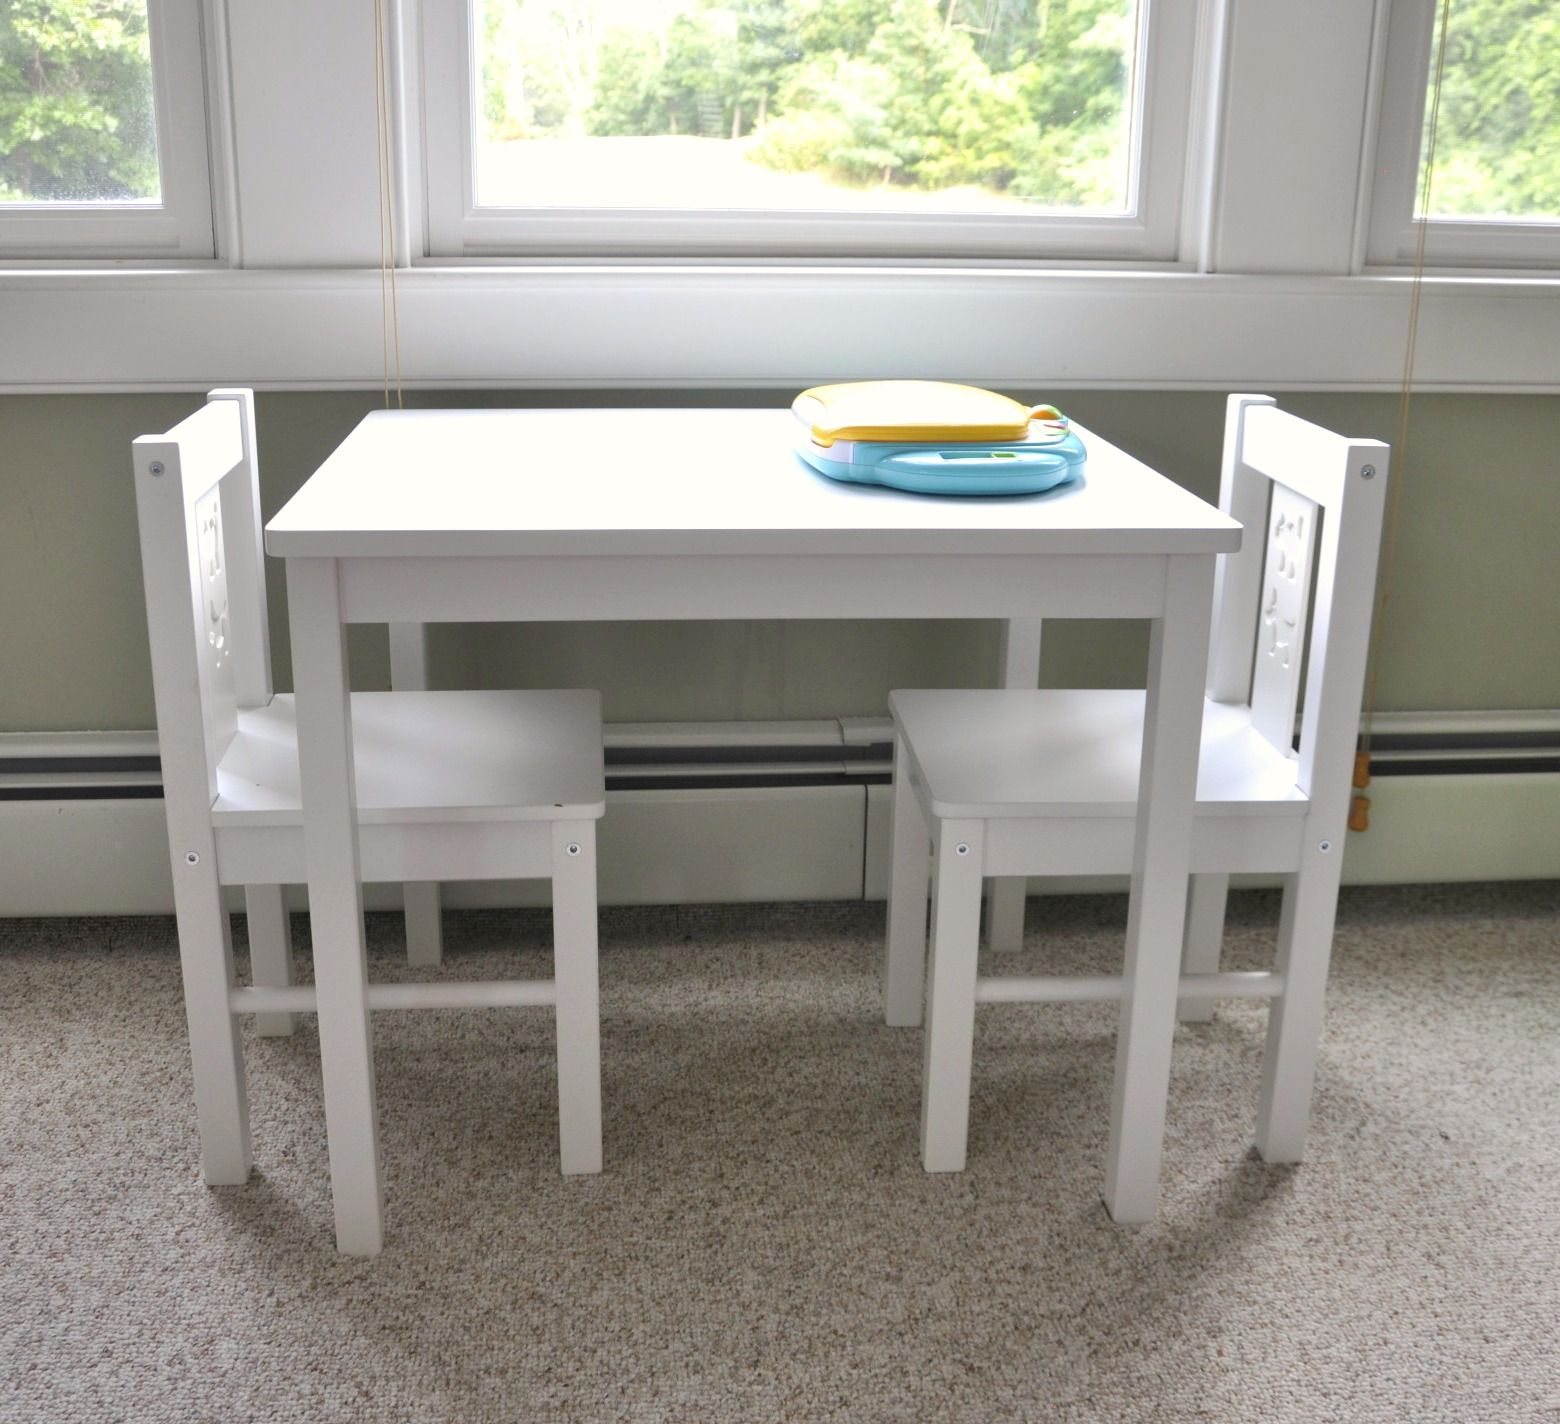 Ikea Expedit Playroom Storage Reveal Kids table, chairs